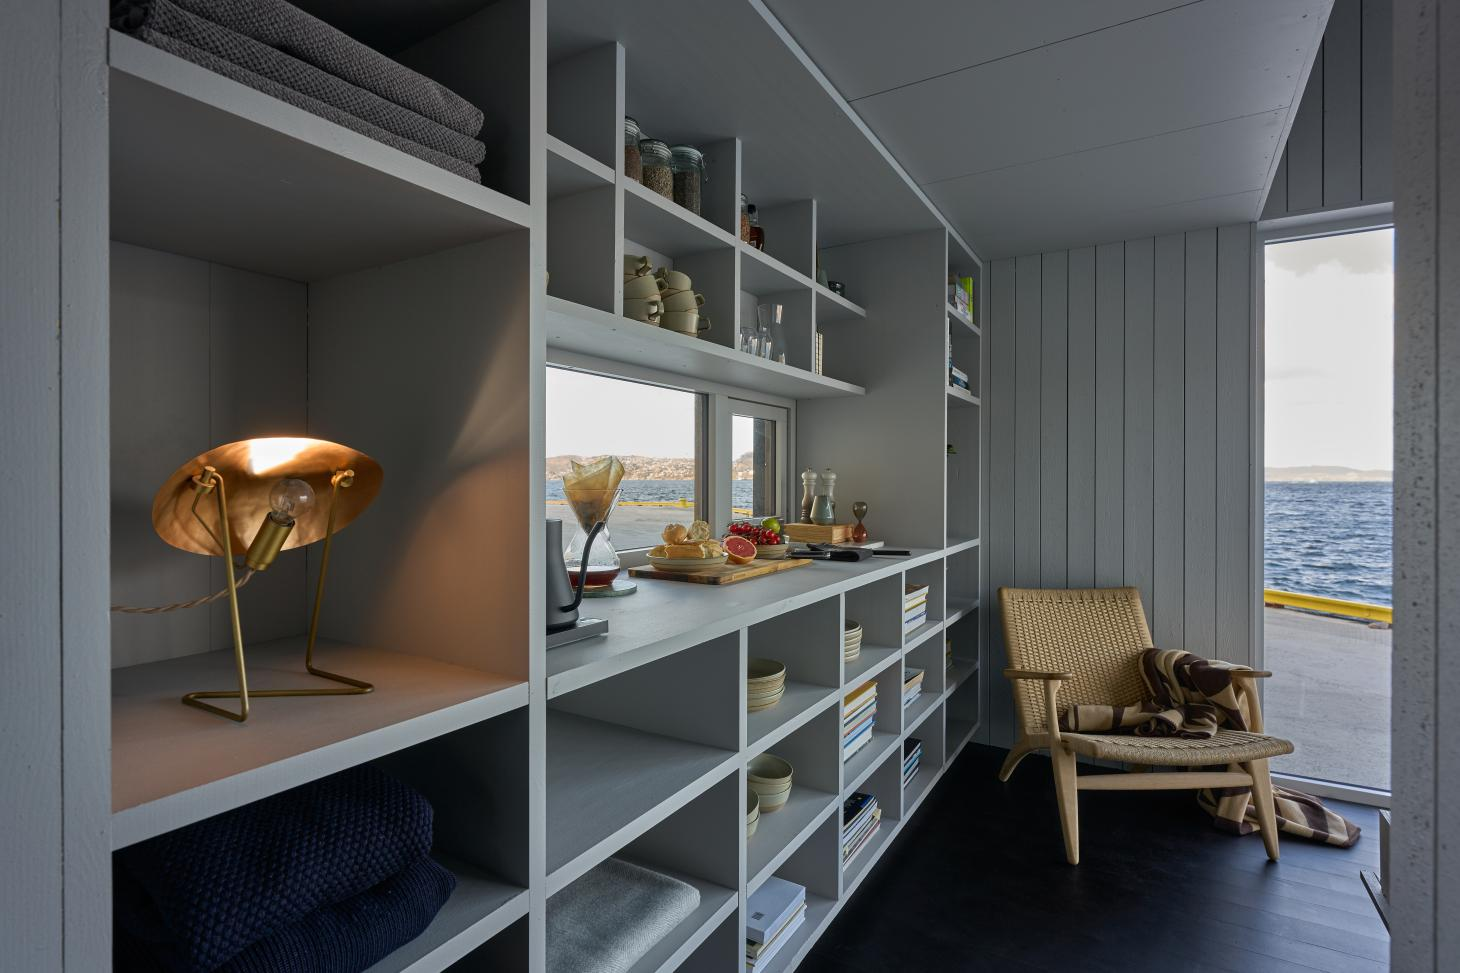 The XS Minihus by Saunders Architecture includes built-in storage and can be supplied with a full kitchen